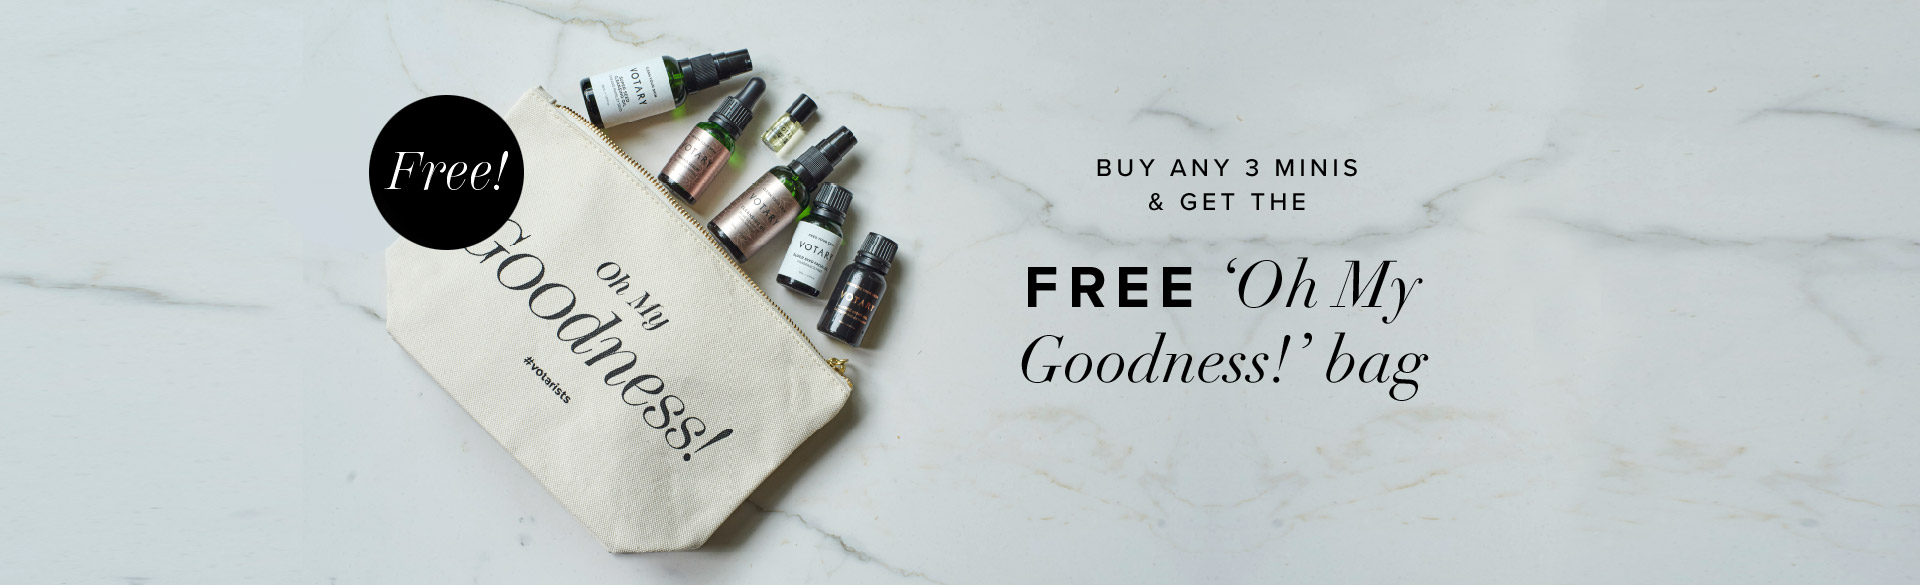 Buy any 3 Minis and get the 'Oh My Goodness' bag FREE!